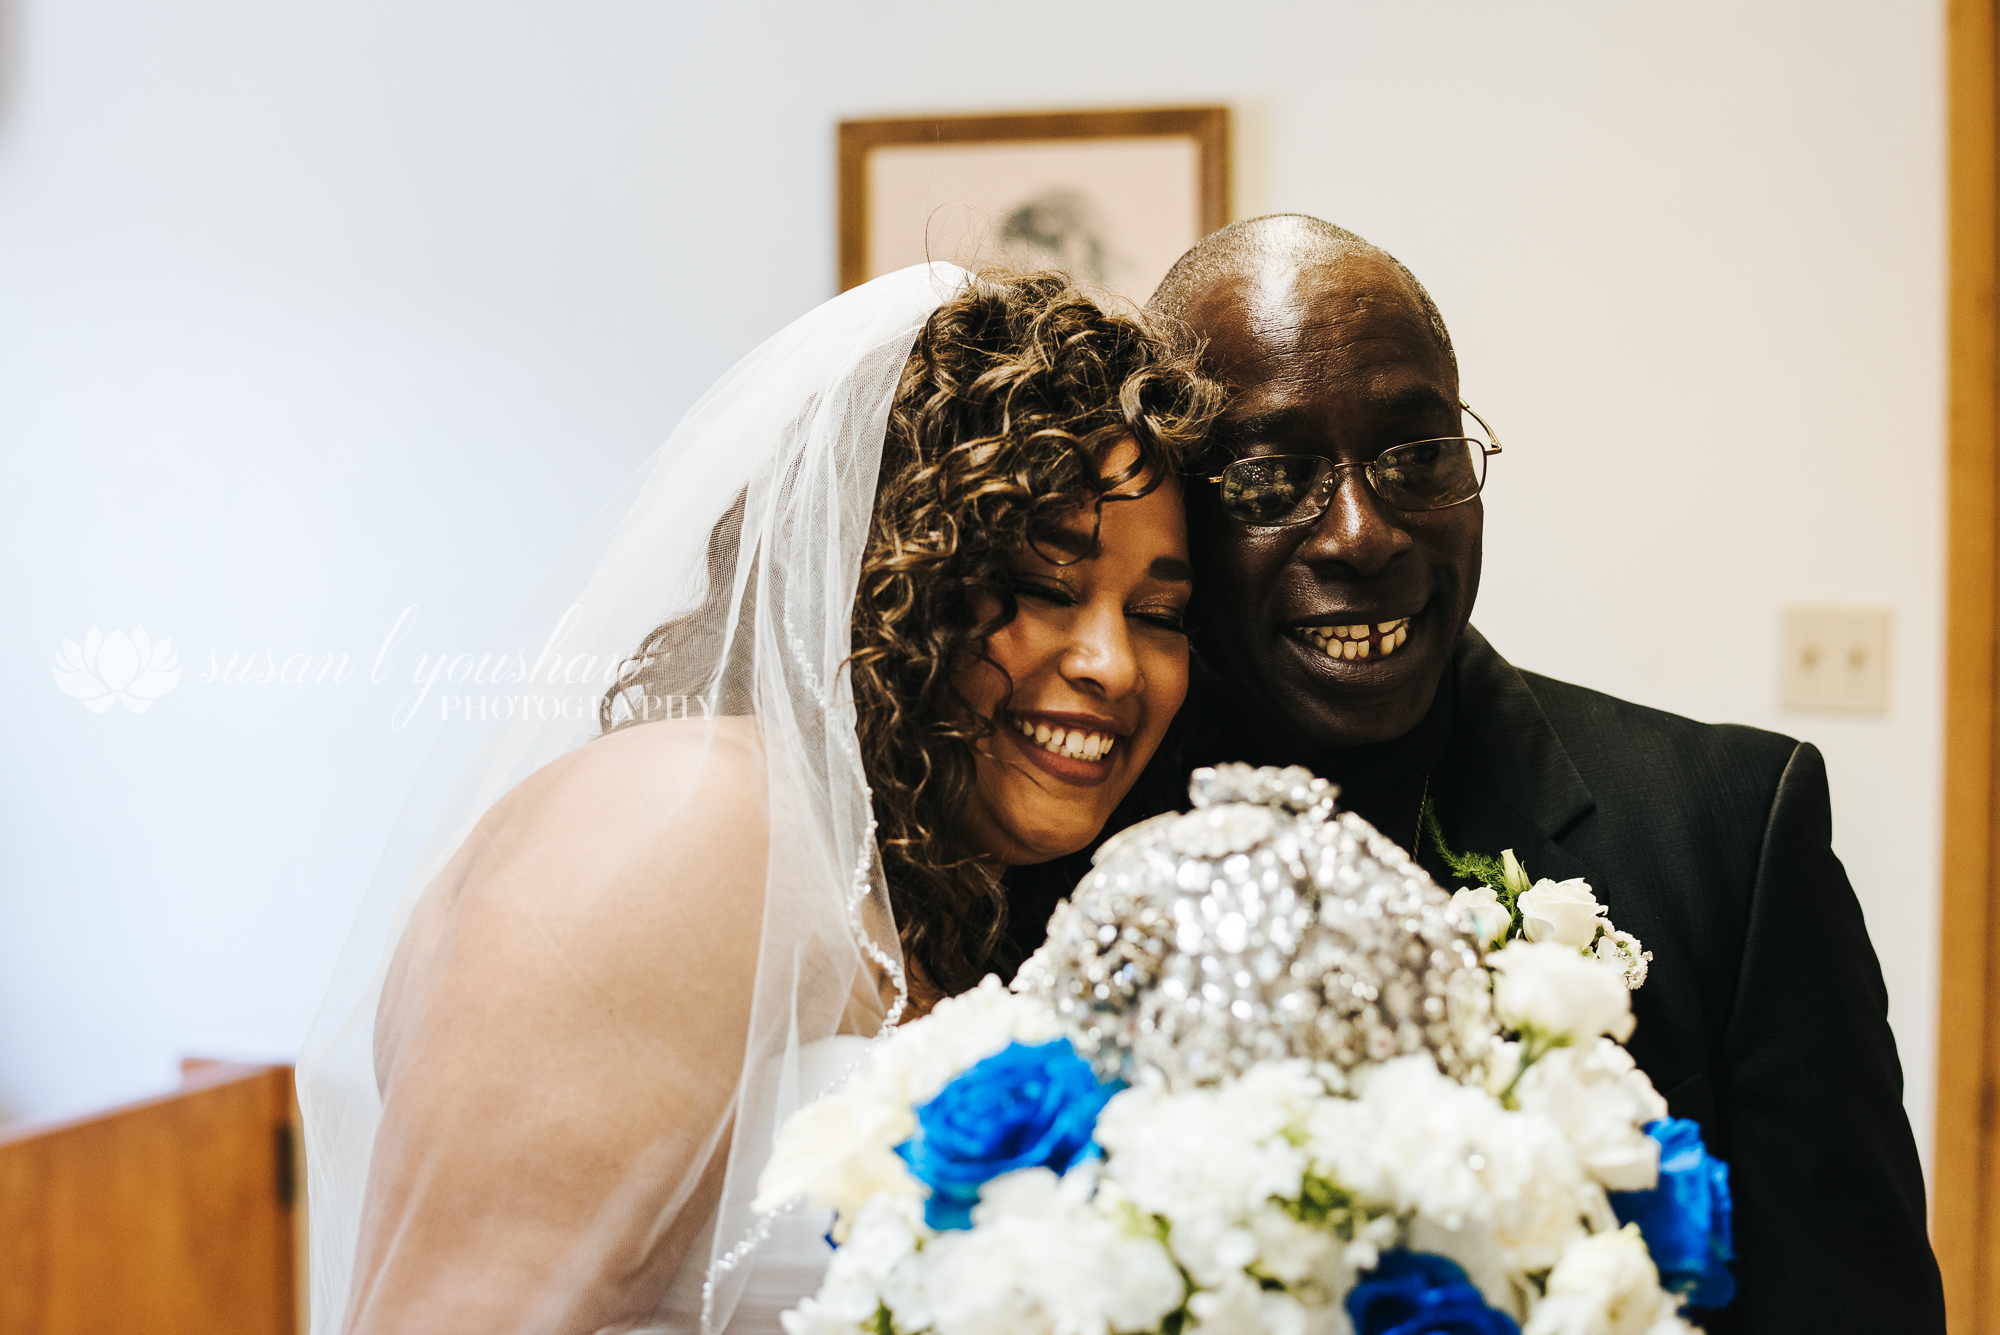 Katelyn and Wes Wedding Photos 07-13-2019 SLY Photography-37.jpg